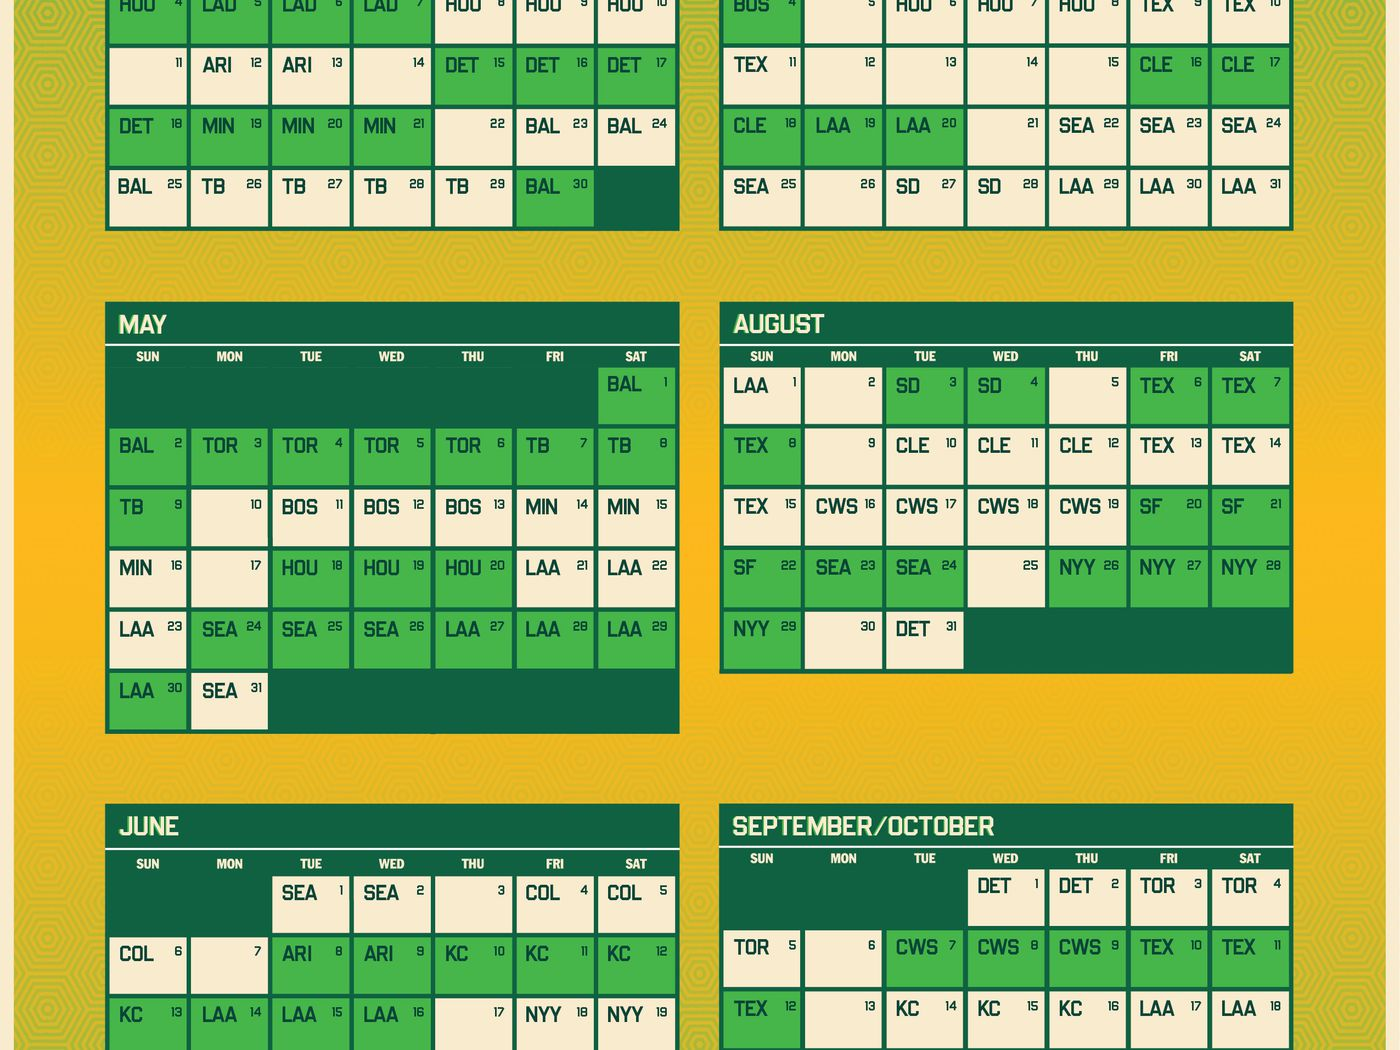 Oakland A's release 2021 schedule   Athletics Nation